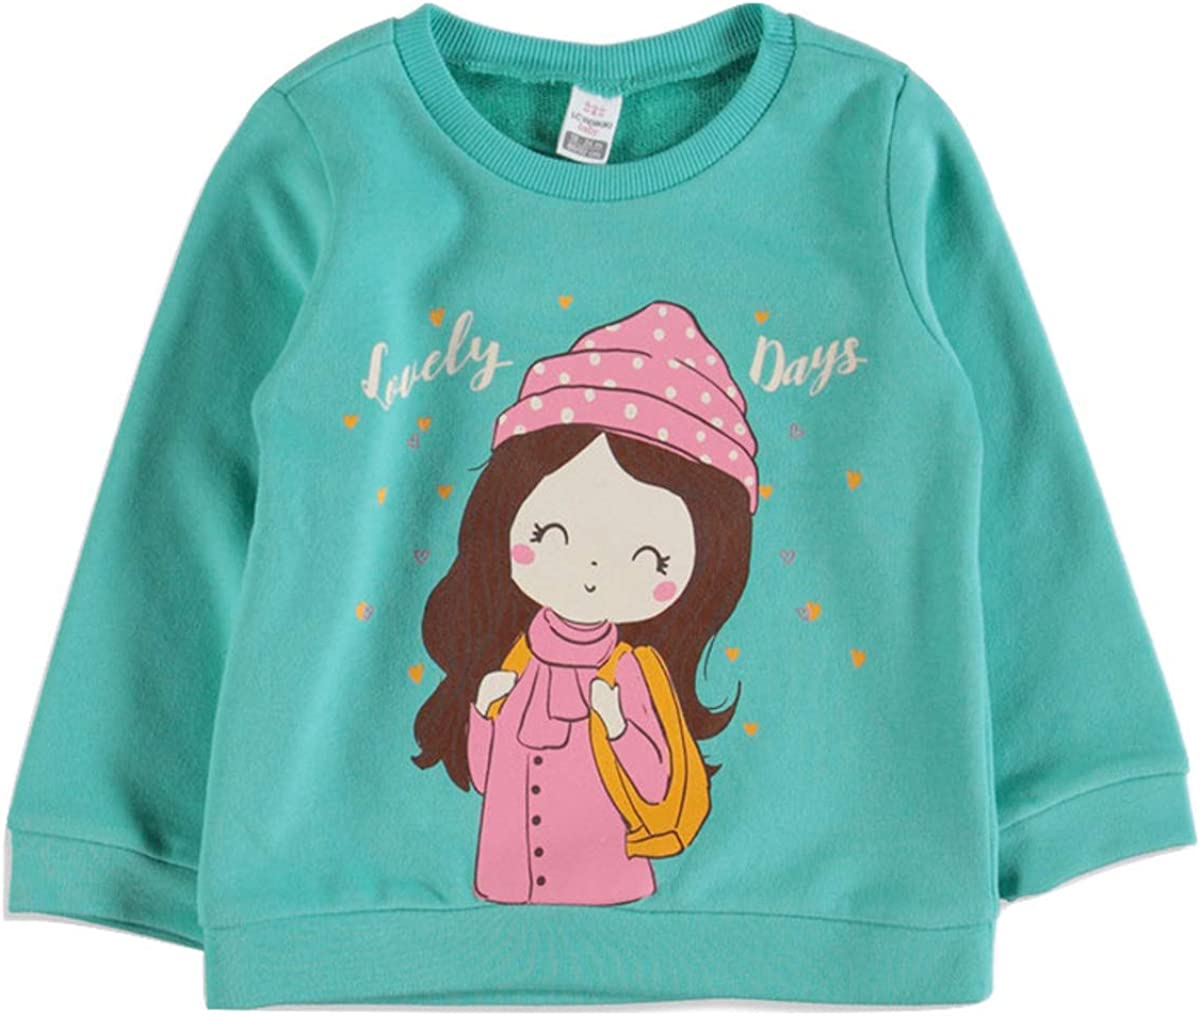 LC WAIKIKI Baby girl sweatshirt with print.